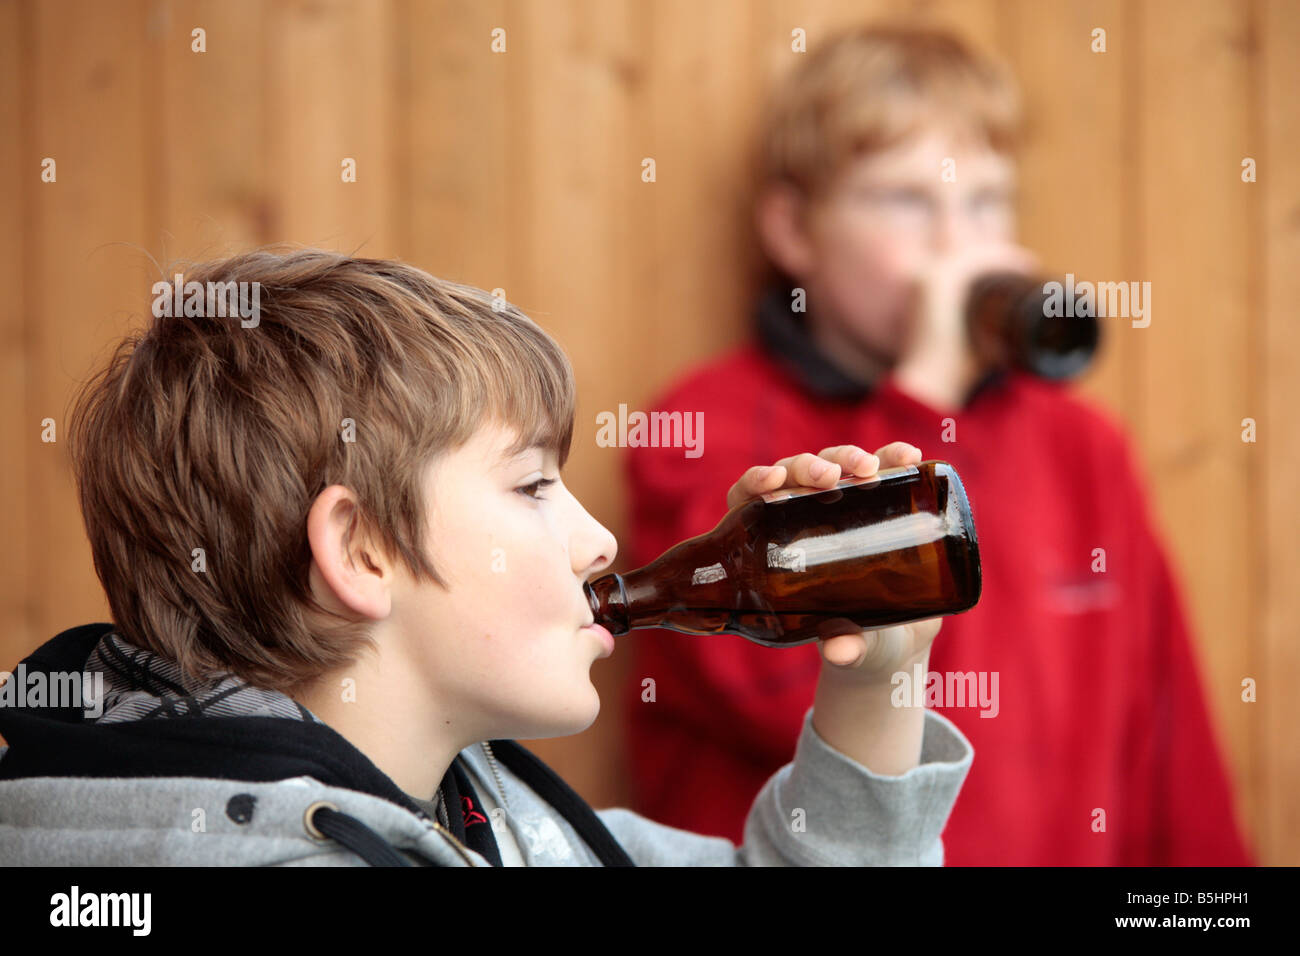 underage smoking Portrait of two underage boys smoking and drinking beer